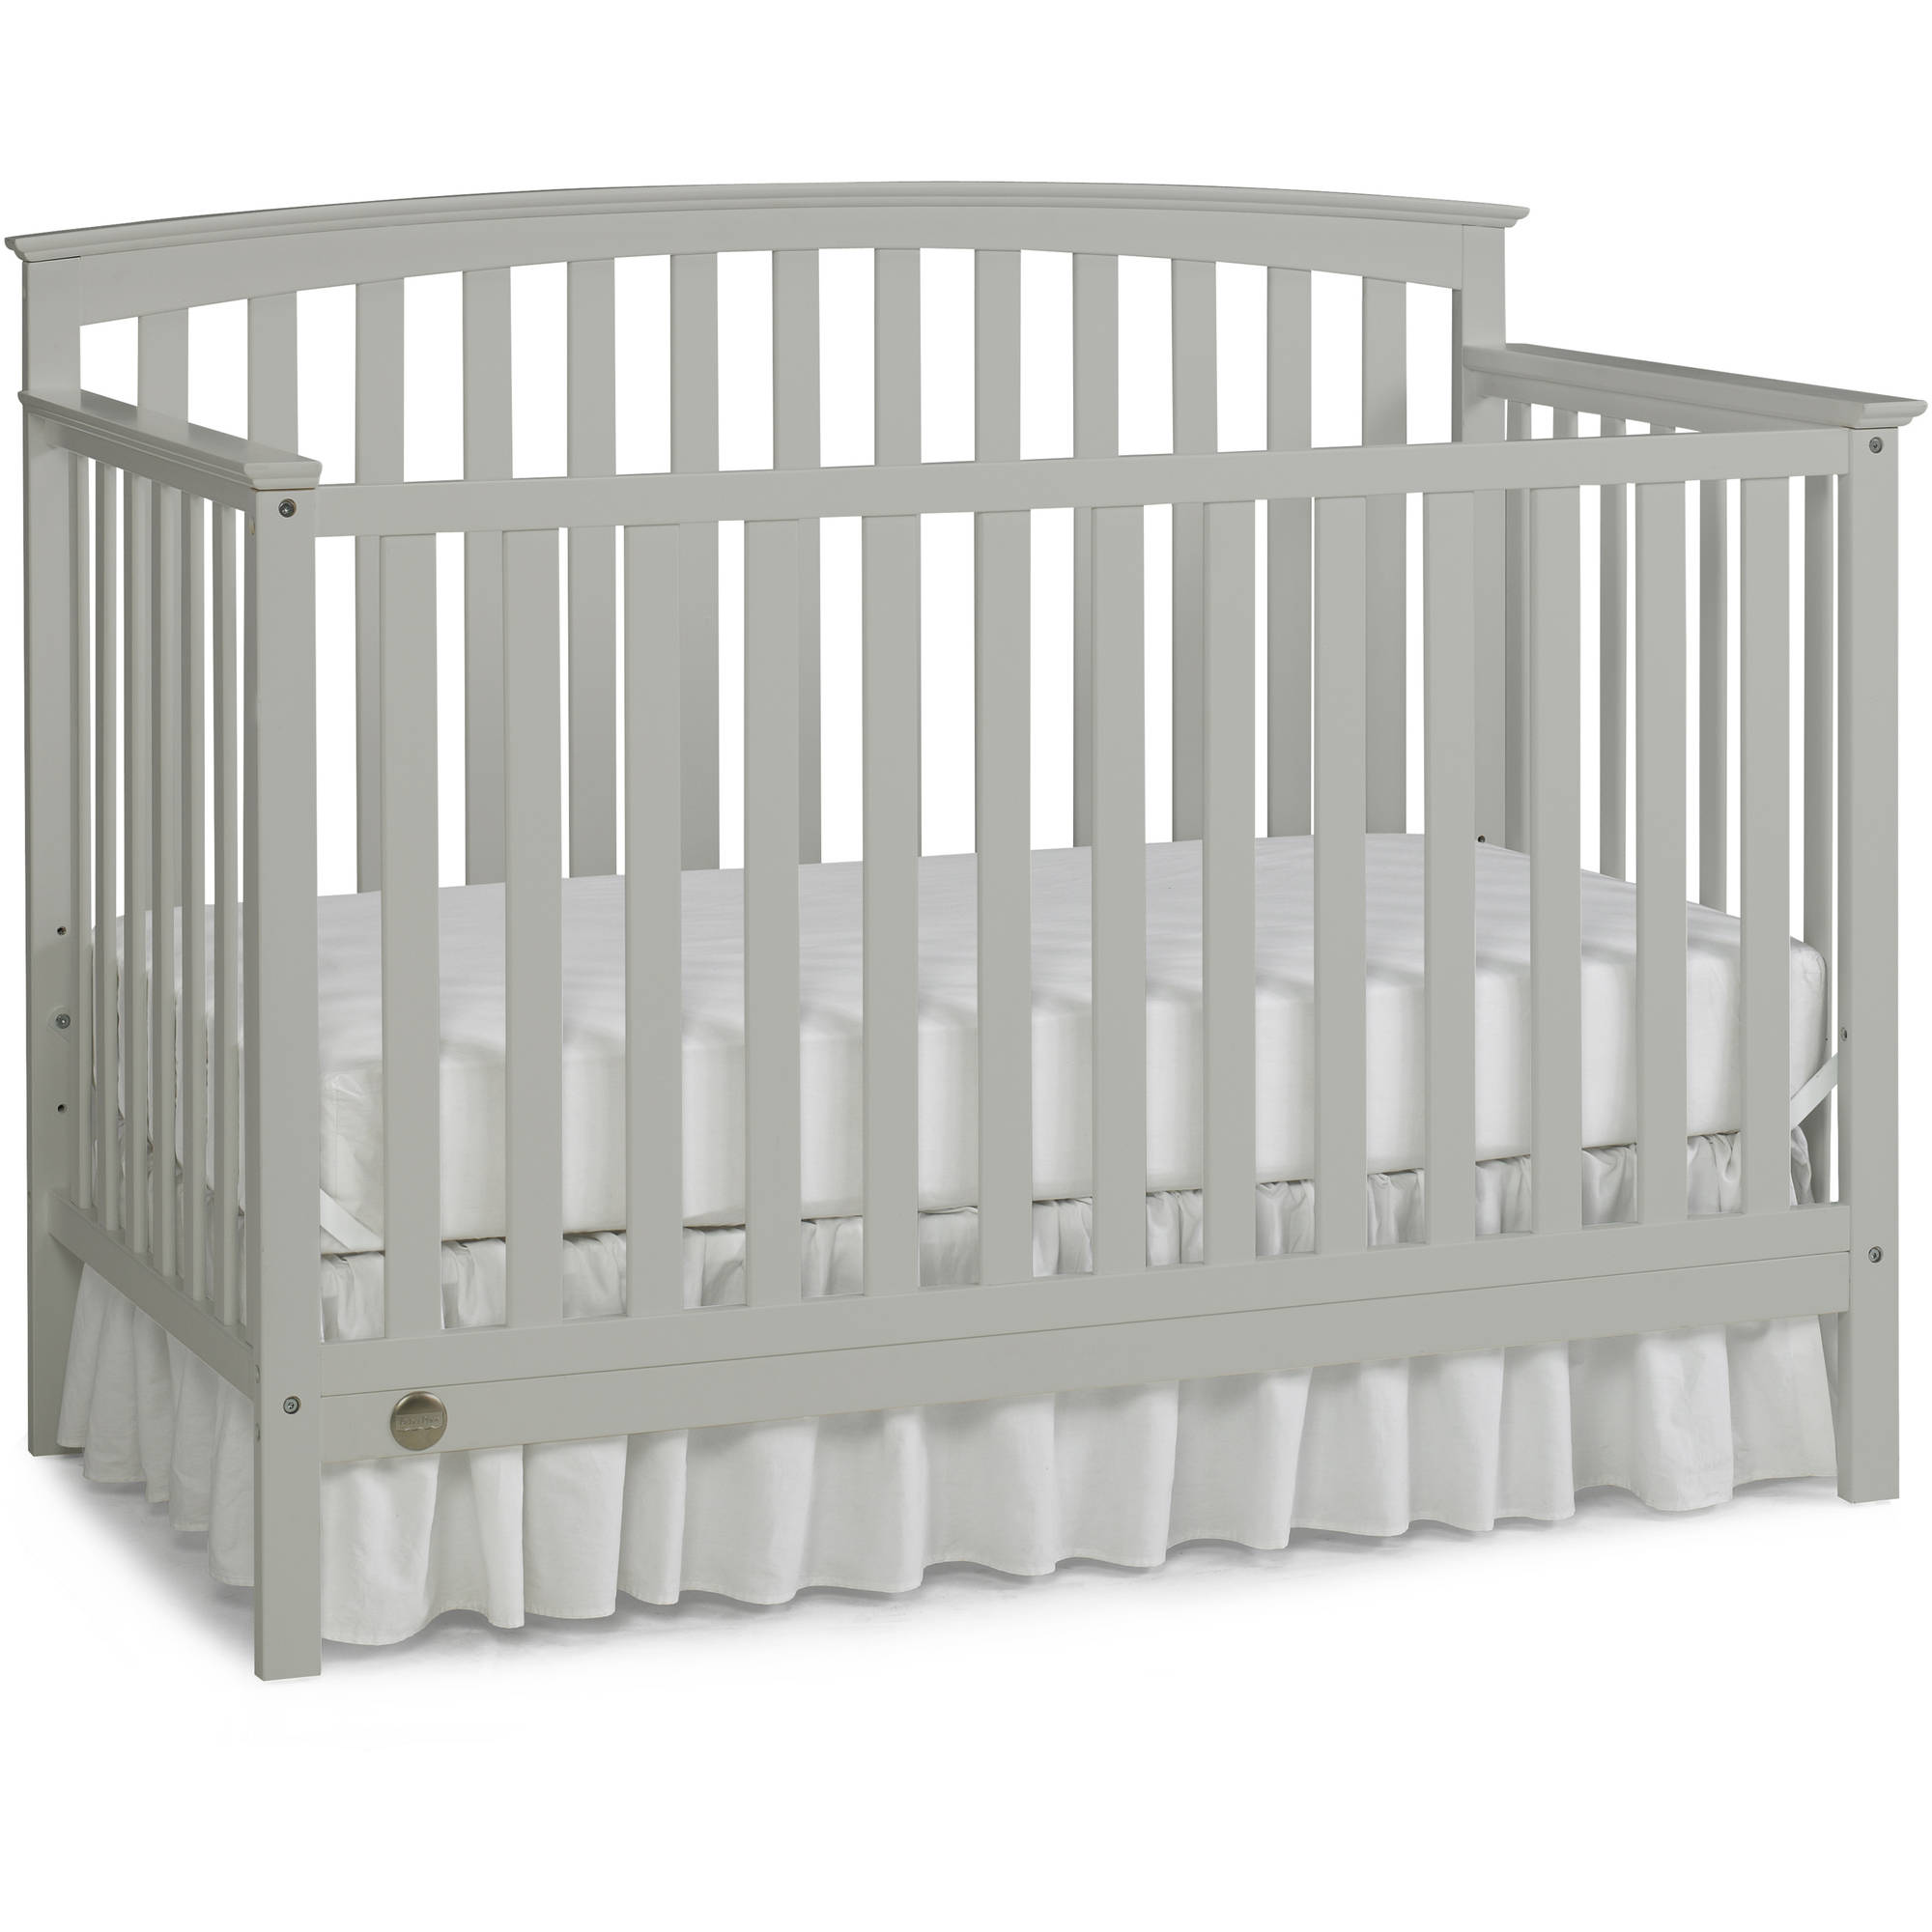 Fisher-Price Jesse 4-in-1 Convertible Crib Collection, Misty Grey